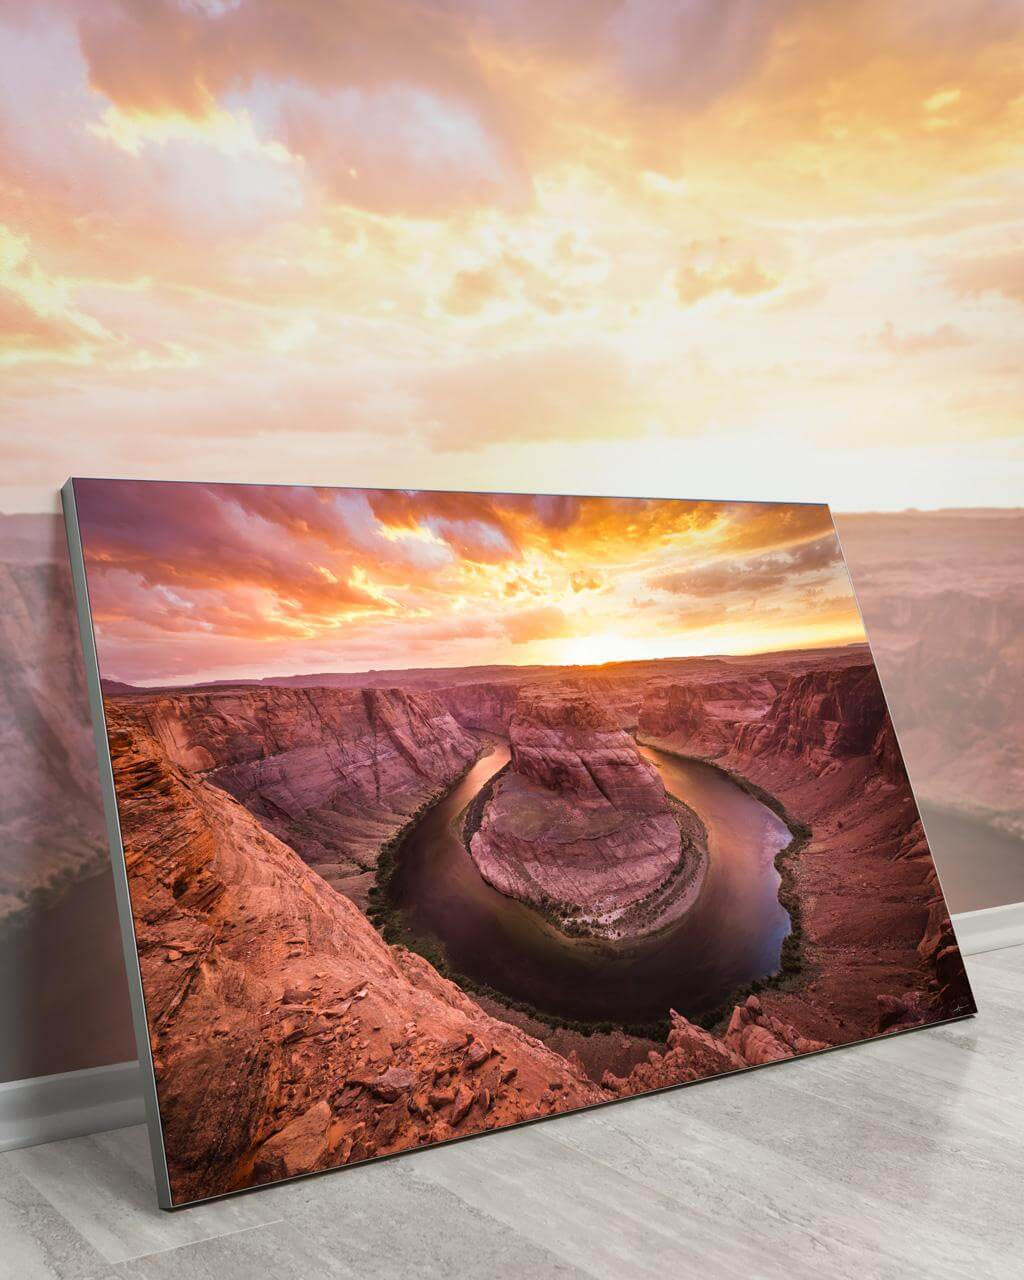 Massive Wall Art Huge Decor Large Big Biggest Massive Largest Giant Gigantic Wall Décor Art Backlit Fabric Home Deco Artwork Artist Andy Vu Andyhvu Landscape Scenic Photography Instagram Desert Canyon Valley Rock Utah